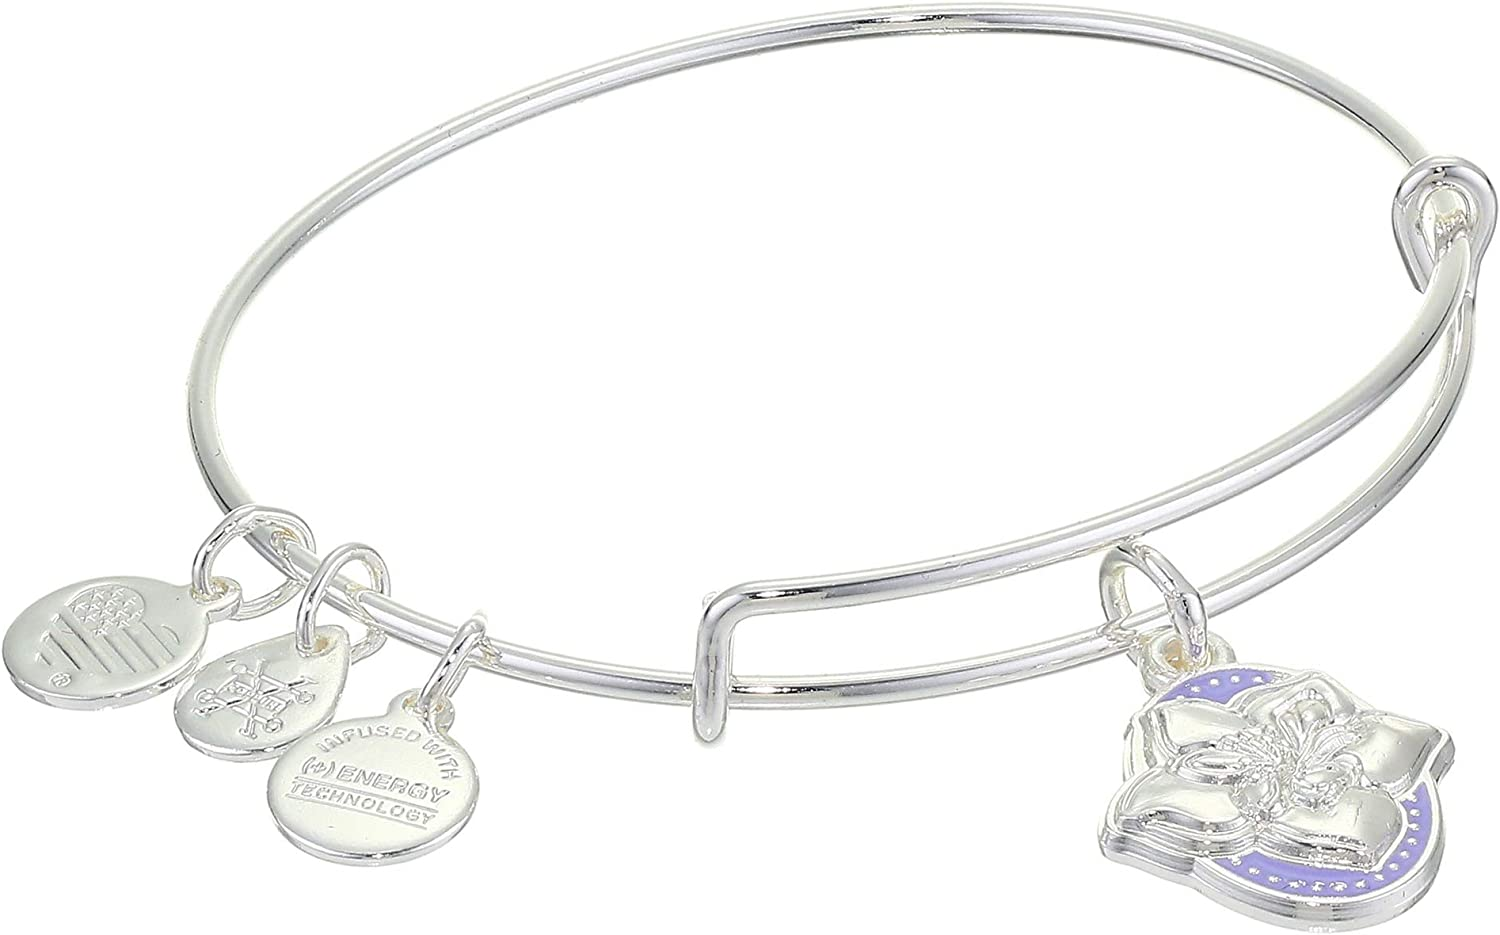 Alex and Ani Color Infusion Bangle Bracelet Silver/Wildflower One Size, A20EBSP04SS, Shiny Silver